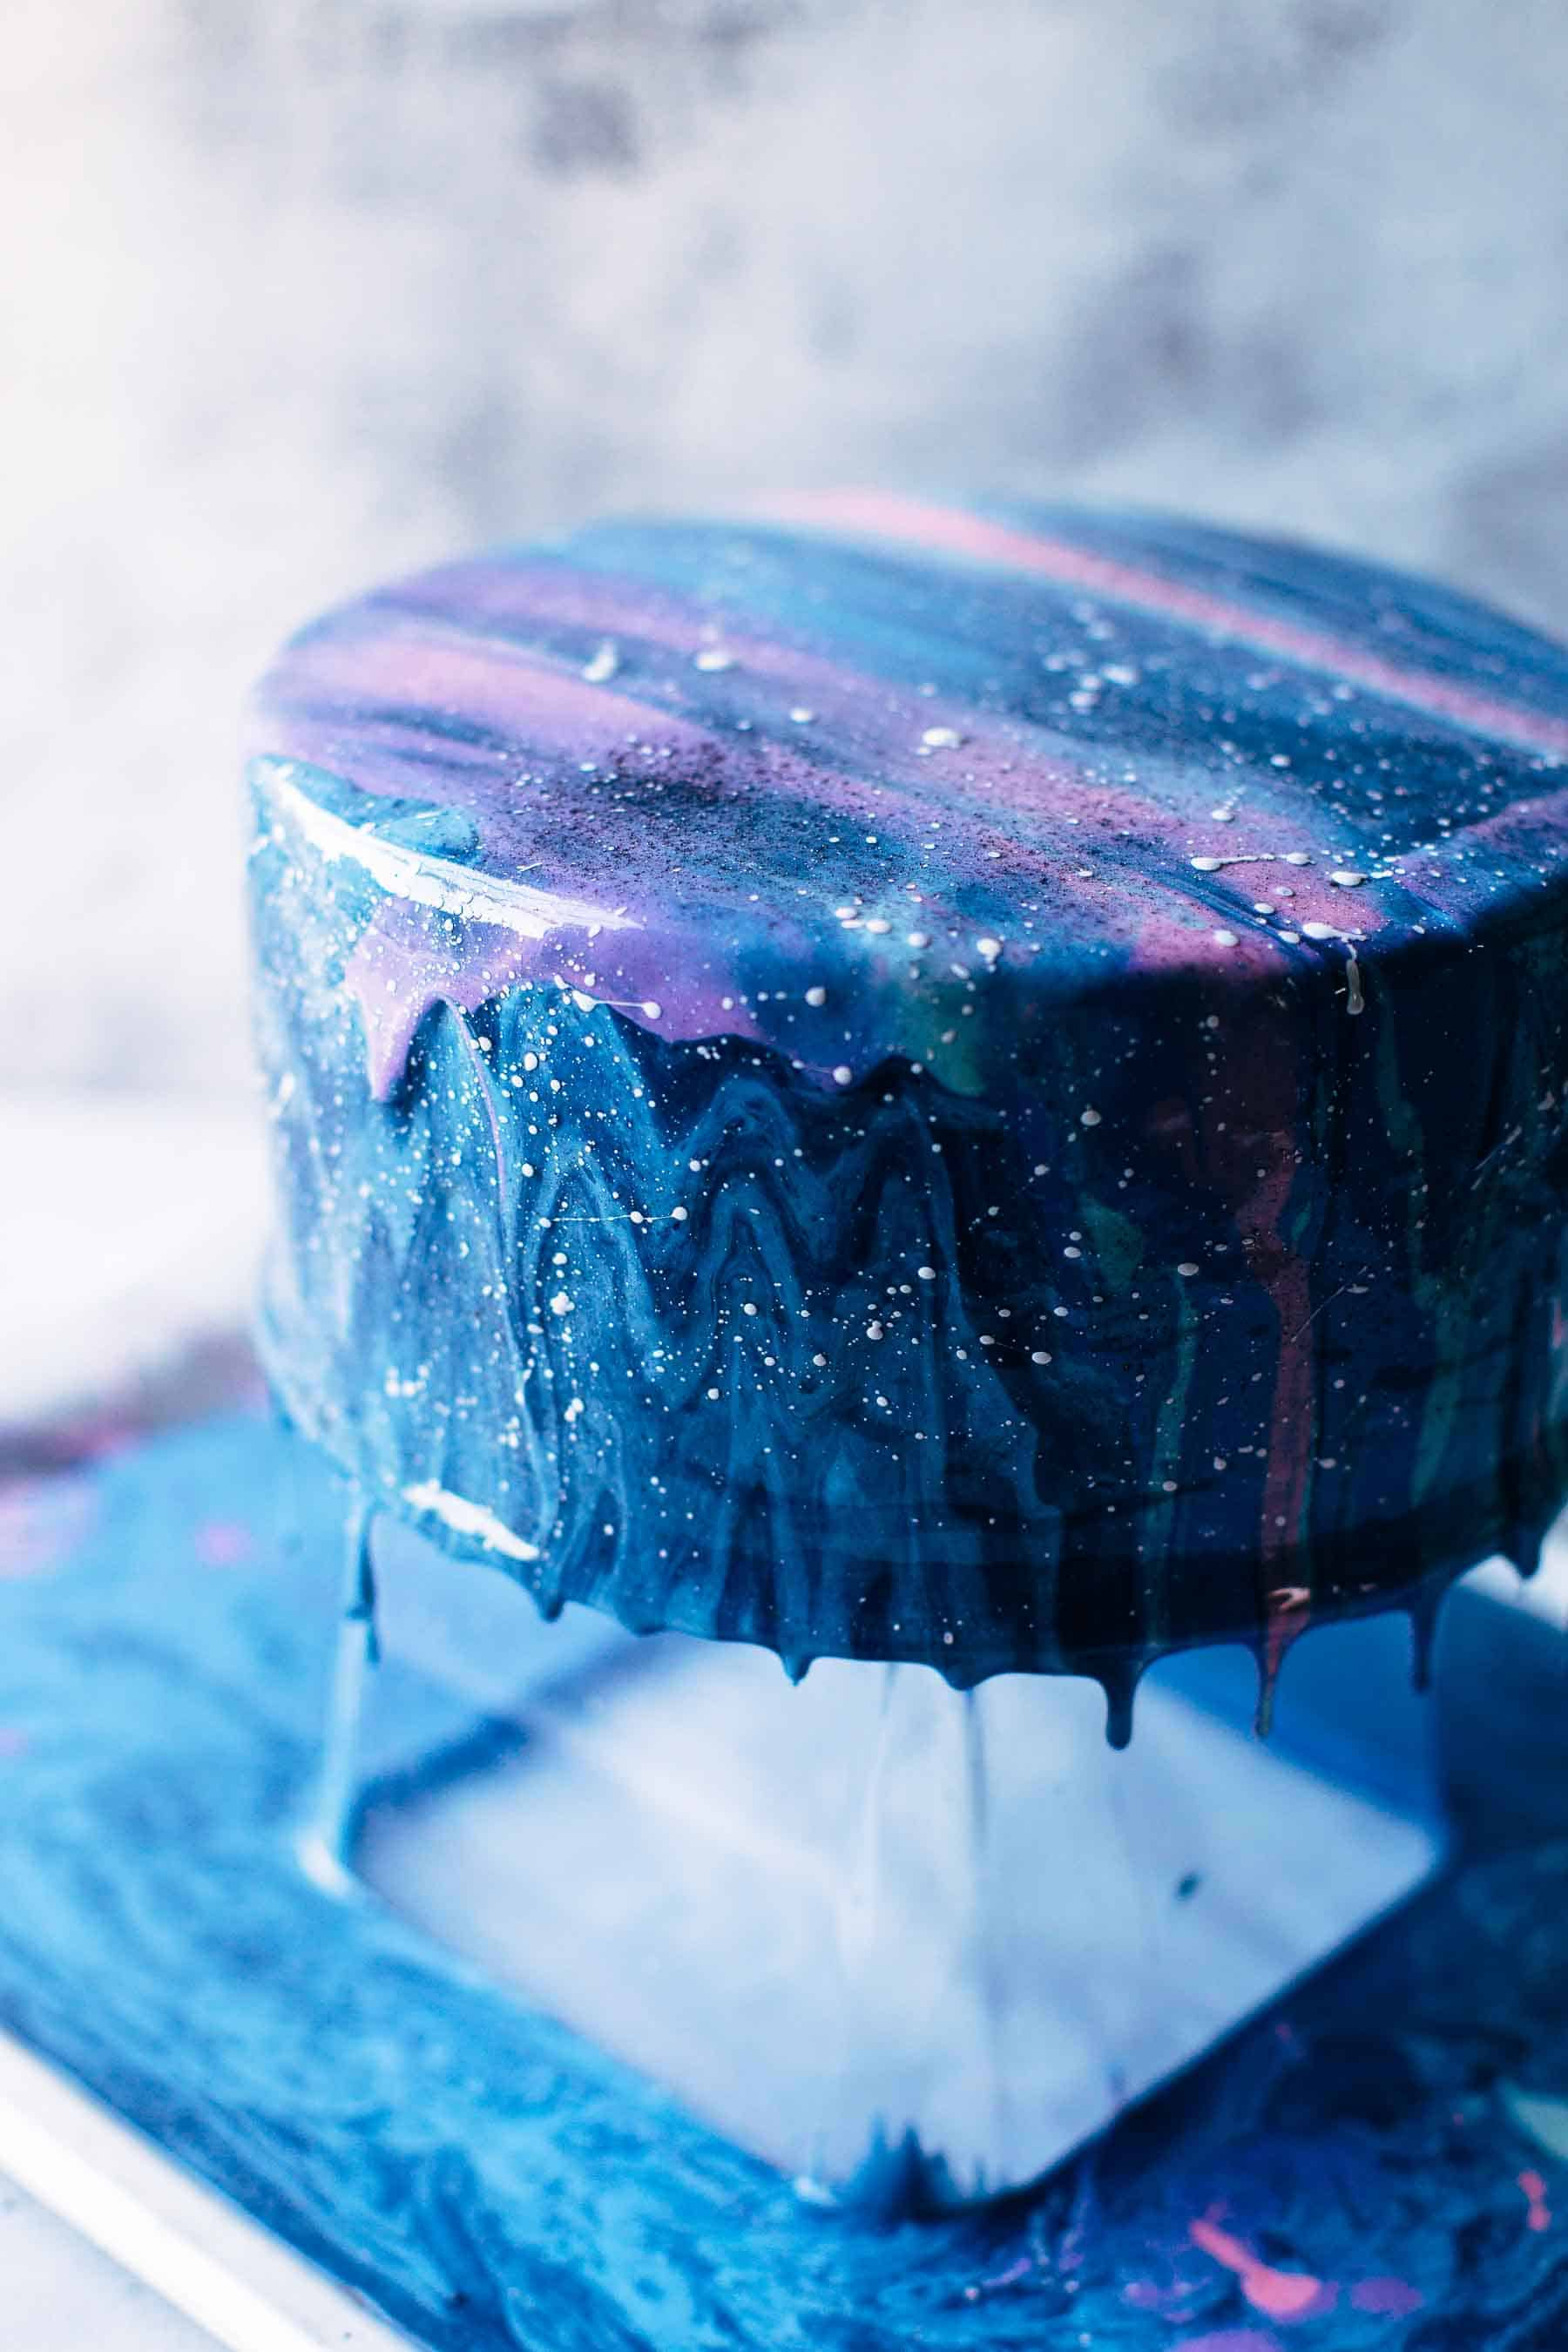 Colored Mirror Glaze Cake Recipe